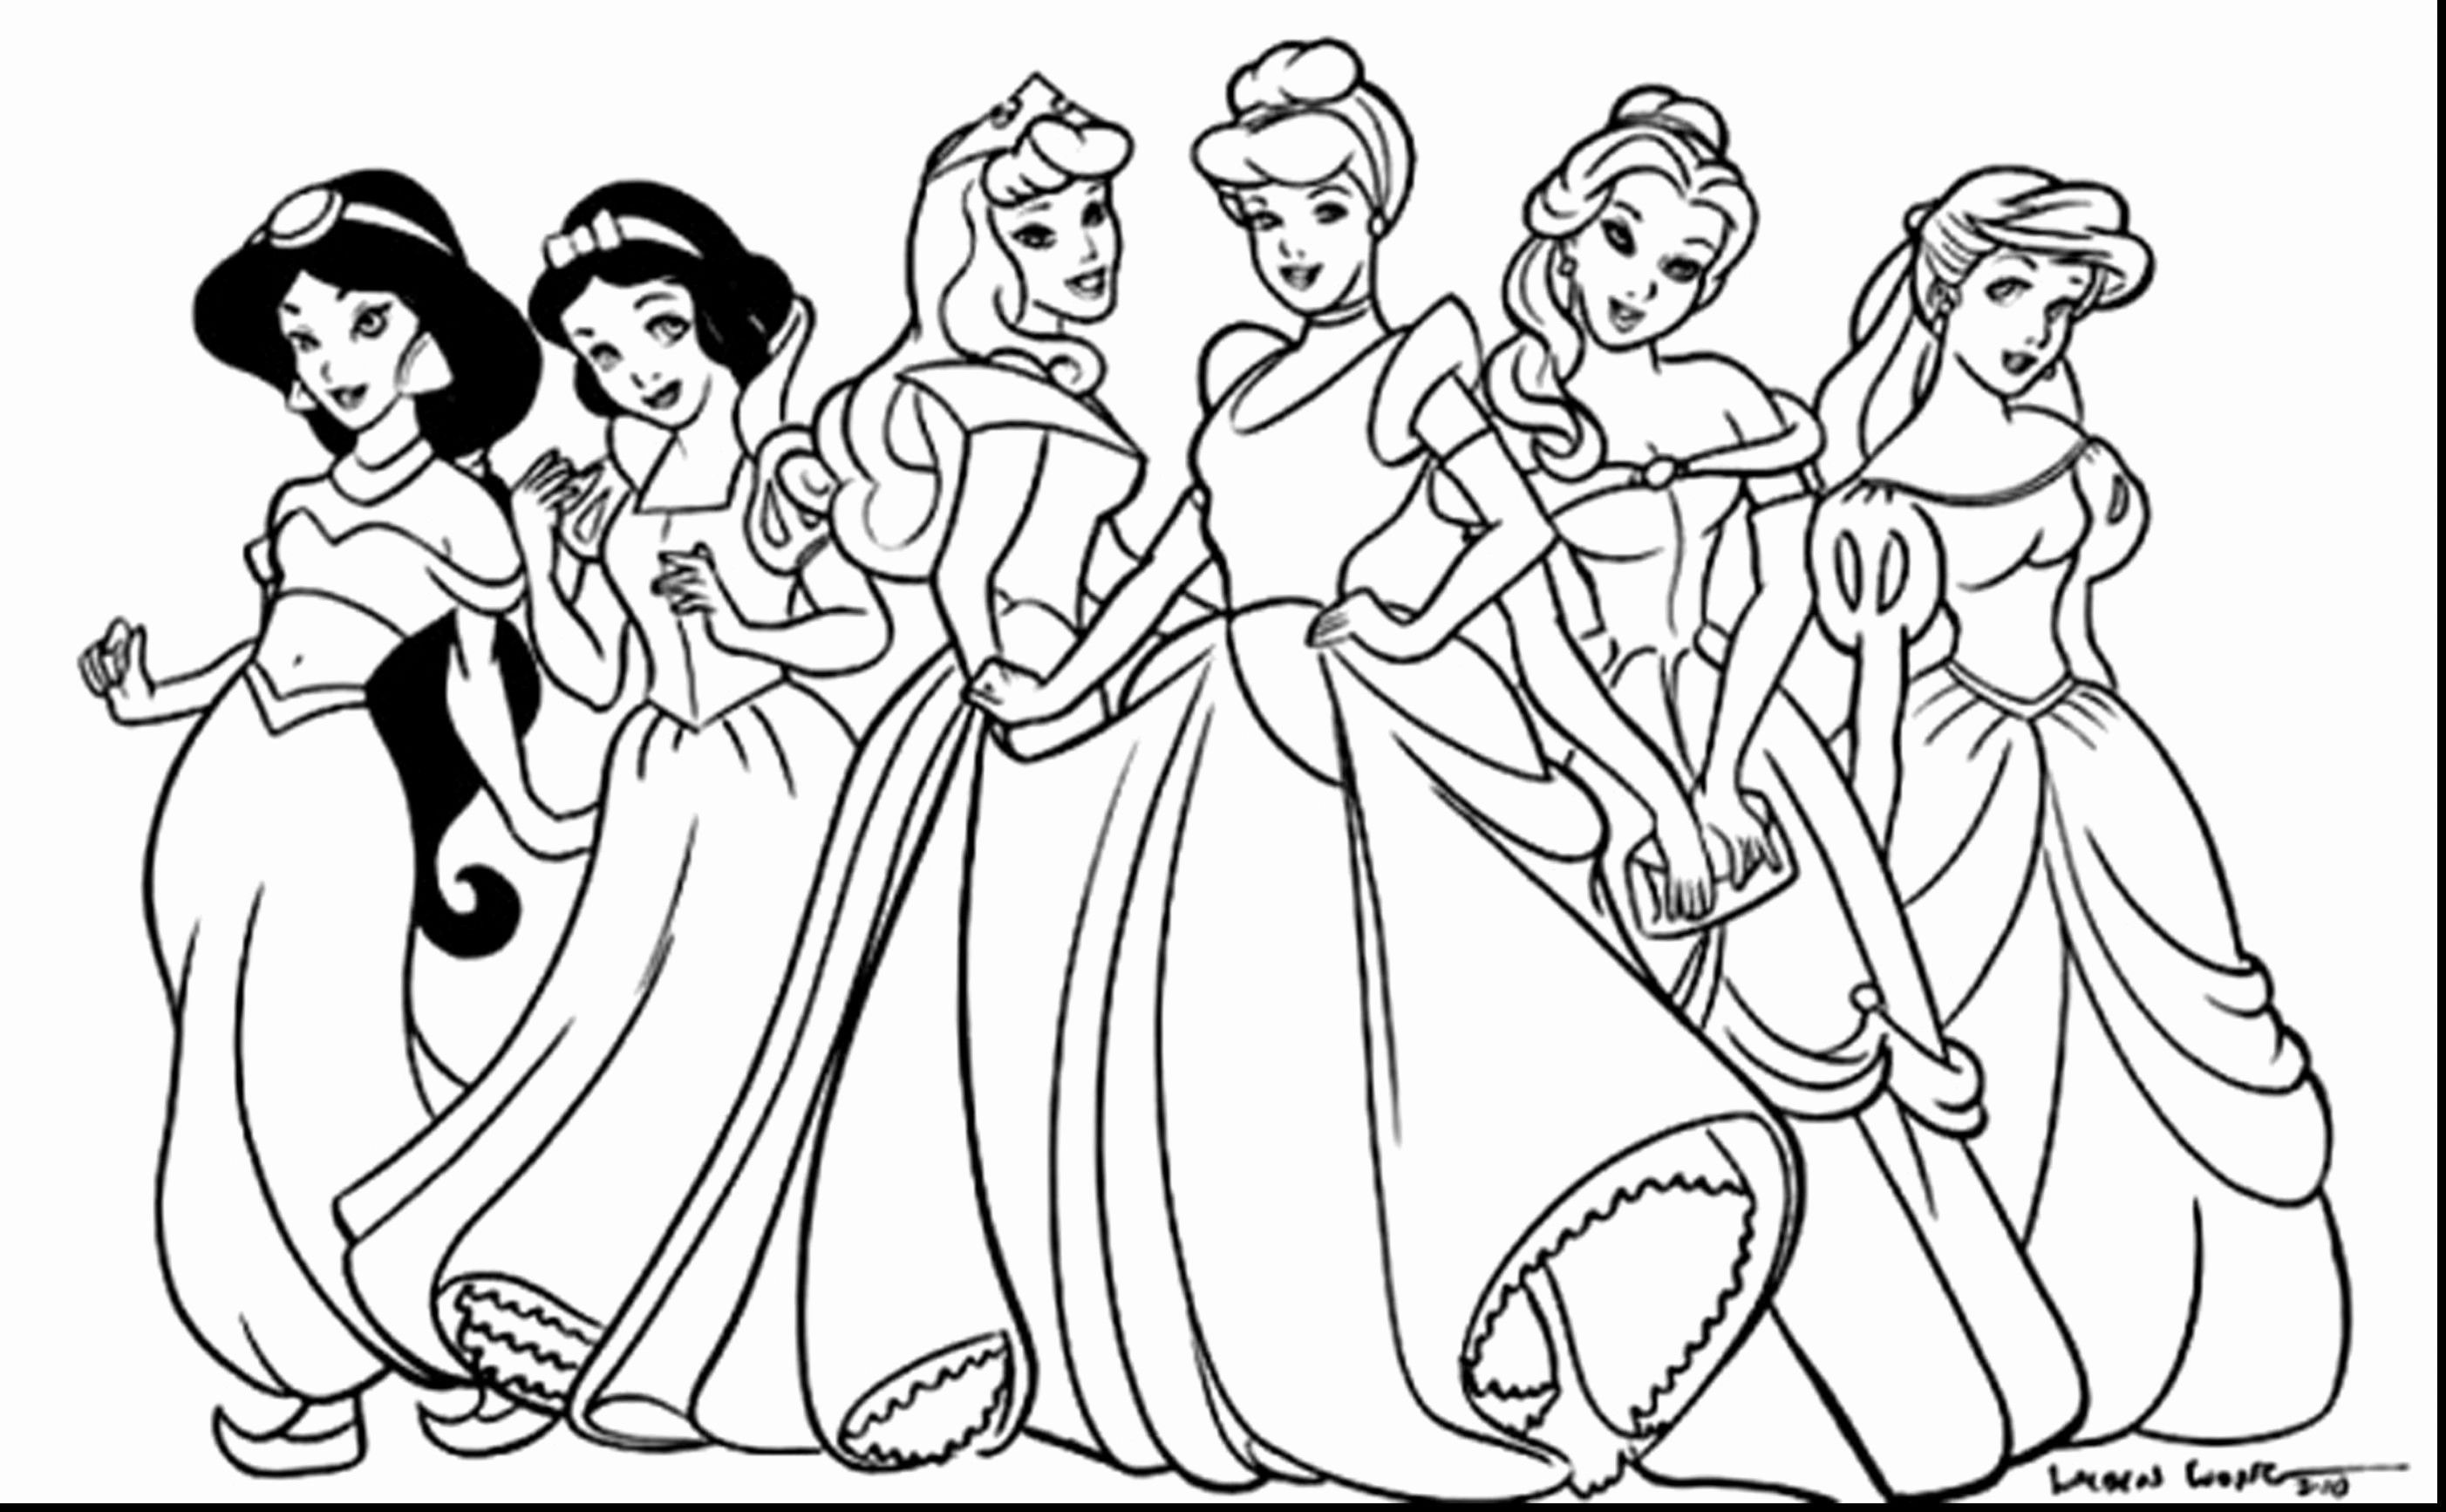 Coloring Pages Princess Pdf Princesas Para Colorear Princesas